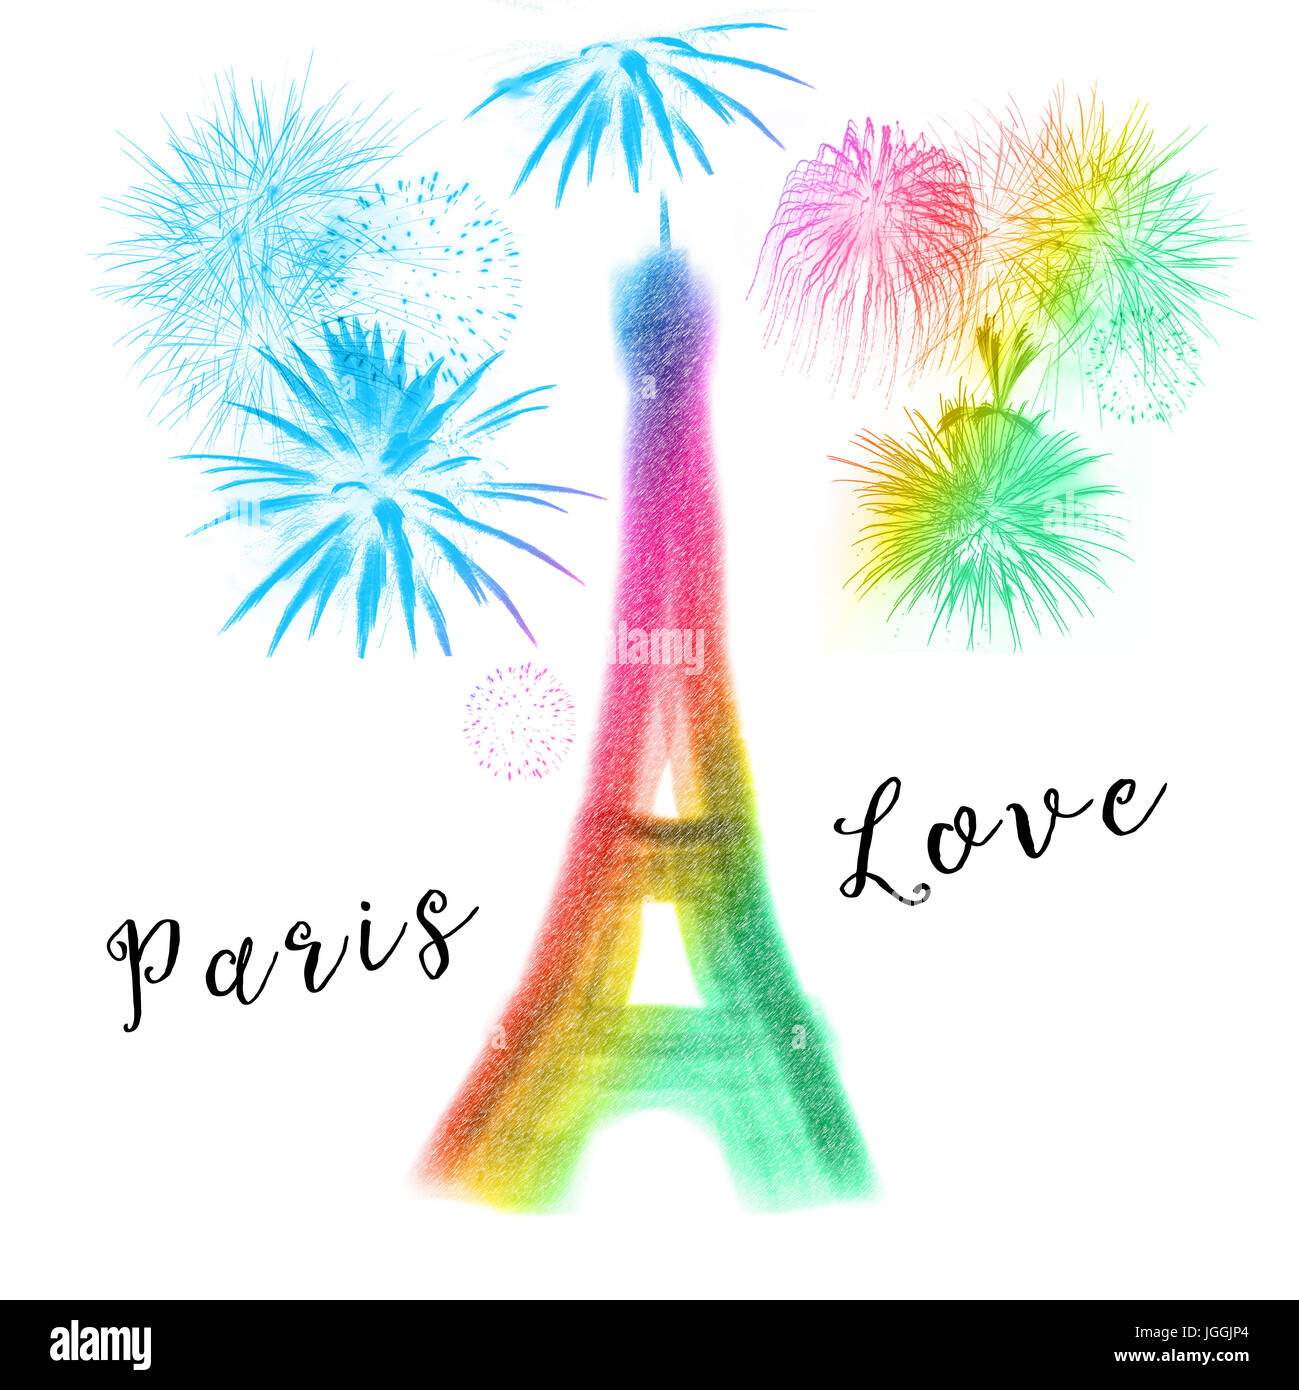 Abstract colorful silhouette of Eiffel tower - Stock Image